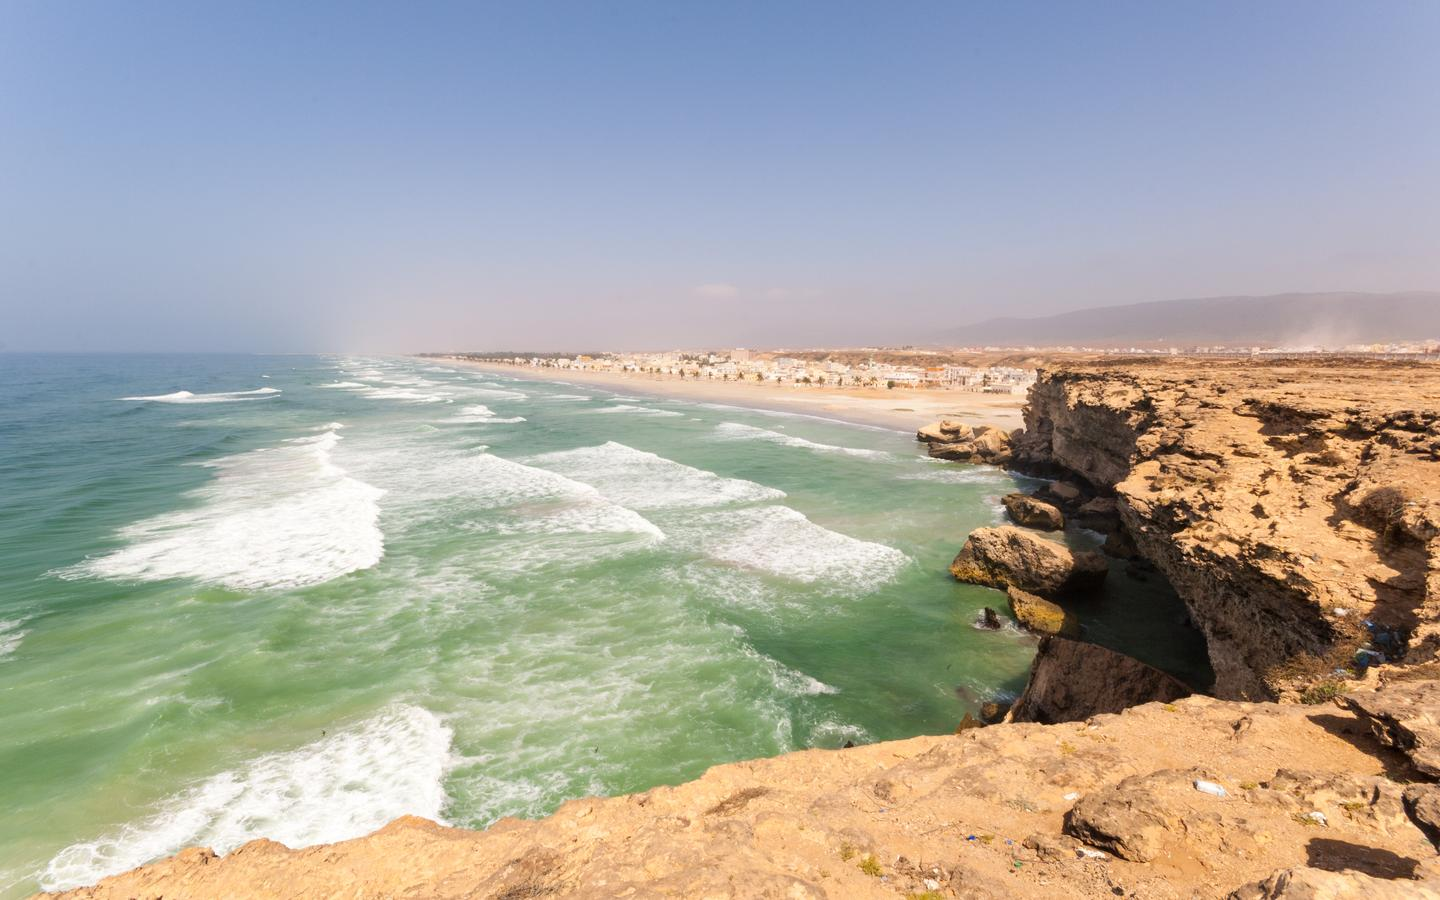 20 Best Hotels in Salalah  Hotels from $37/night - KAYAK